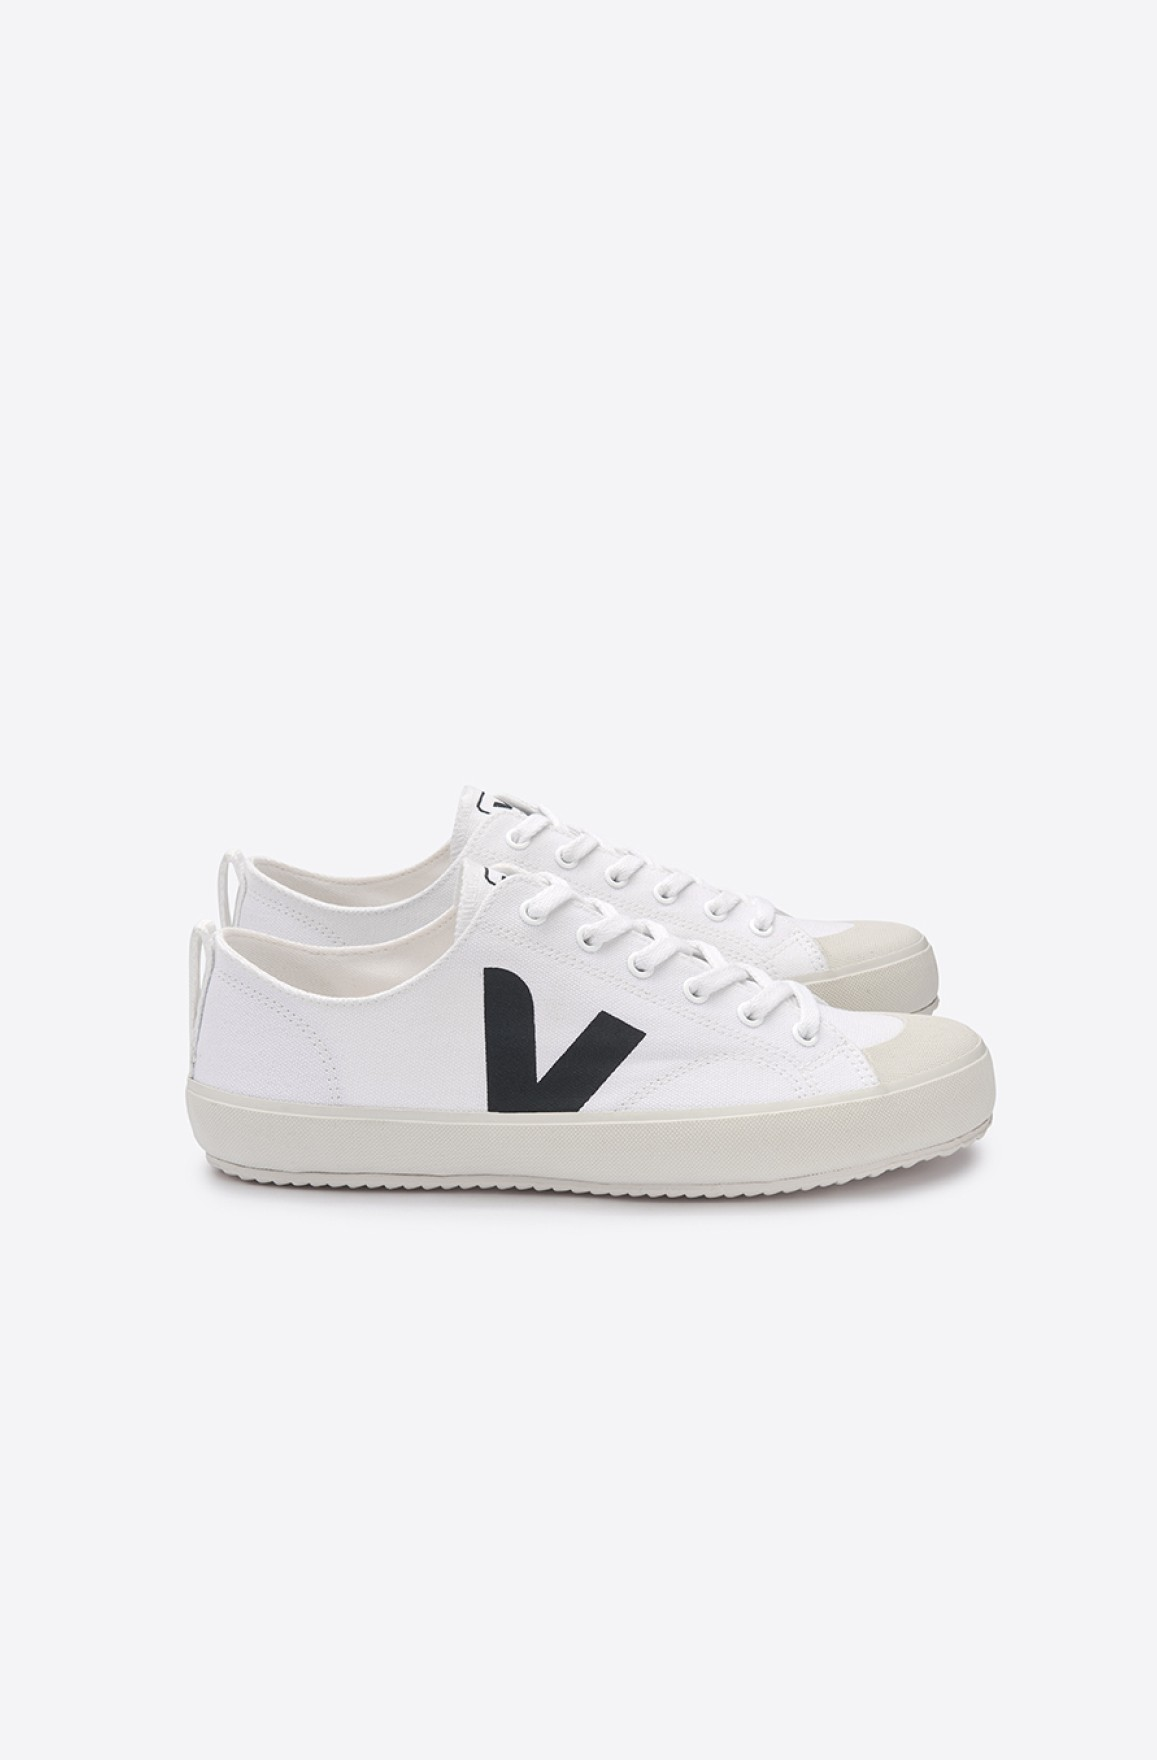 NET SUSTAIN Nova Sneakers aus Biobaumwoll-Canvas